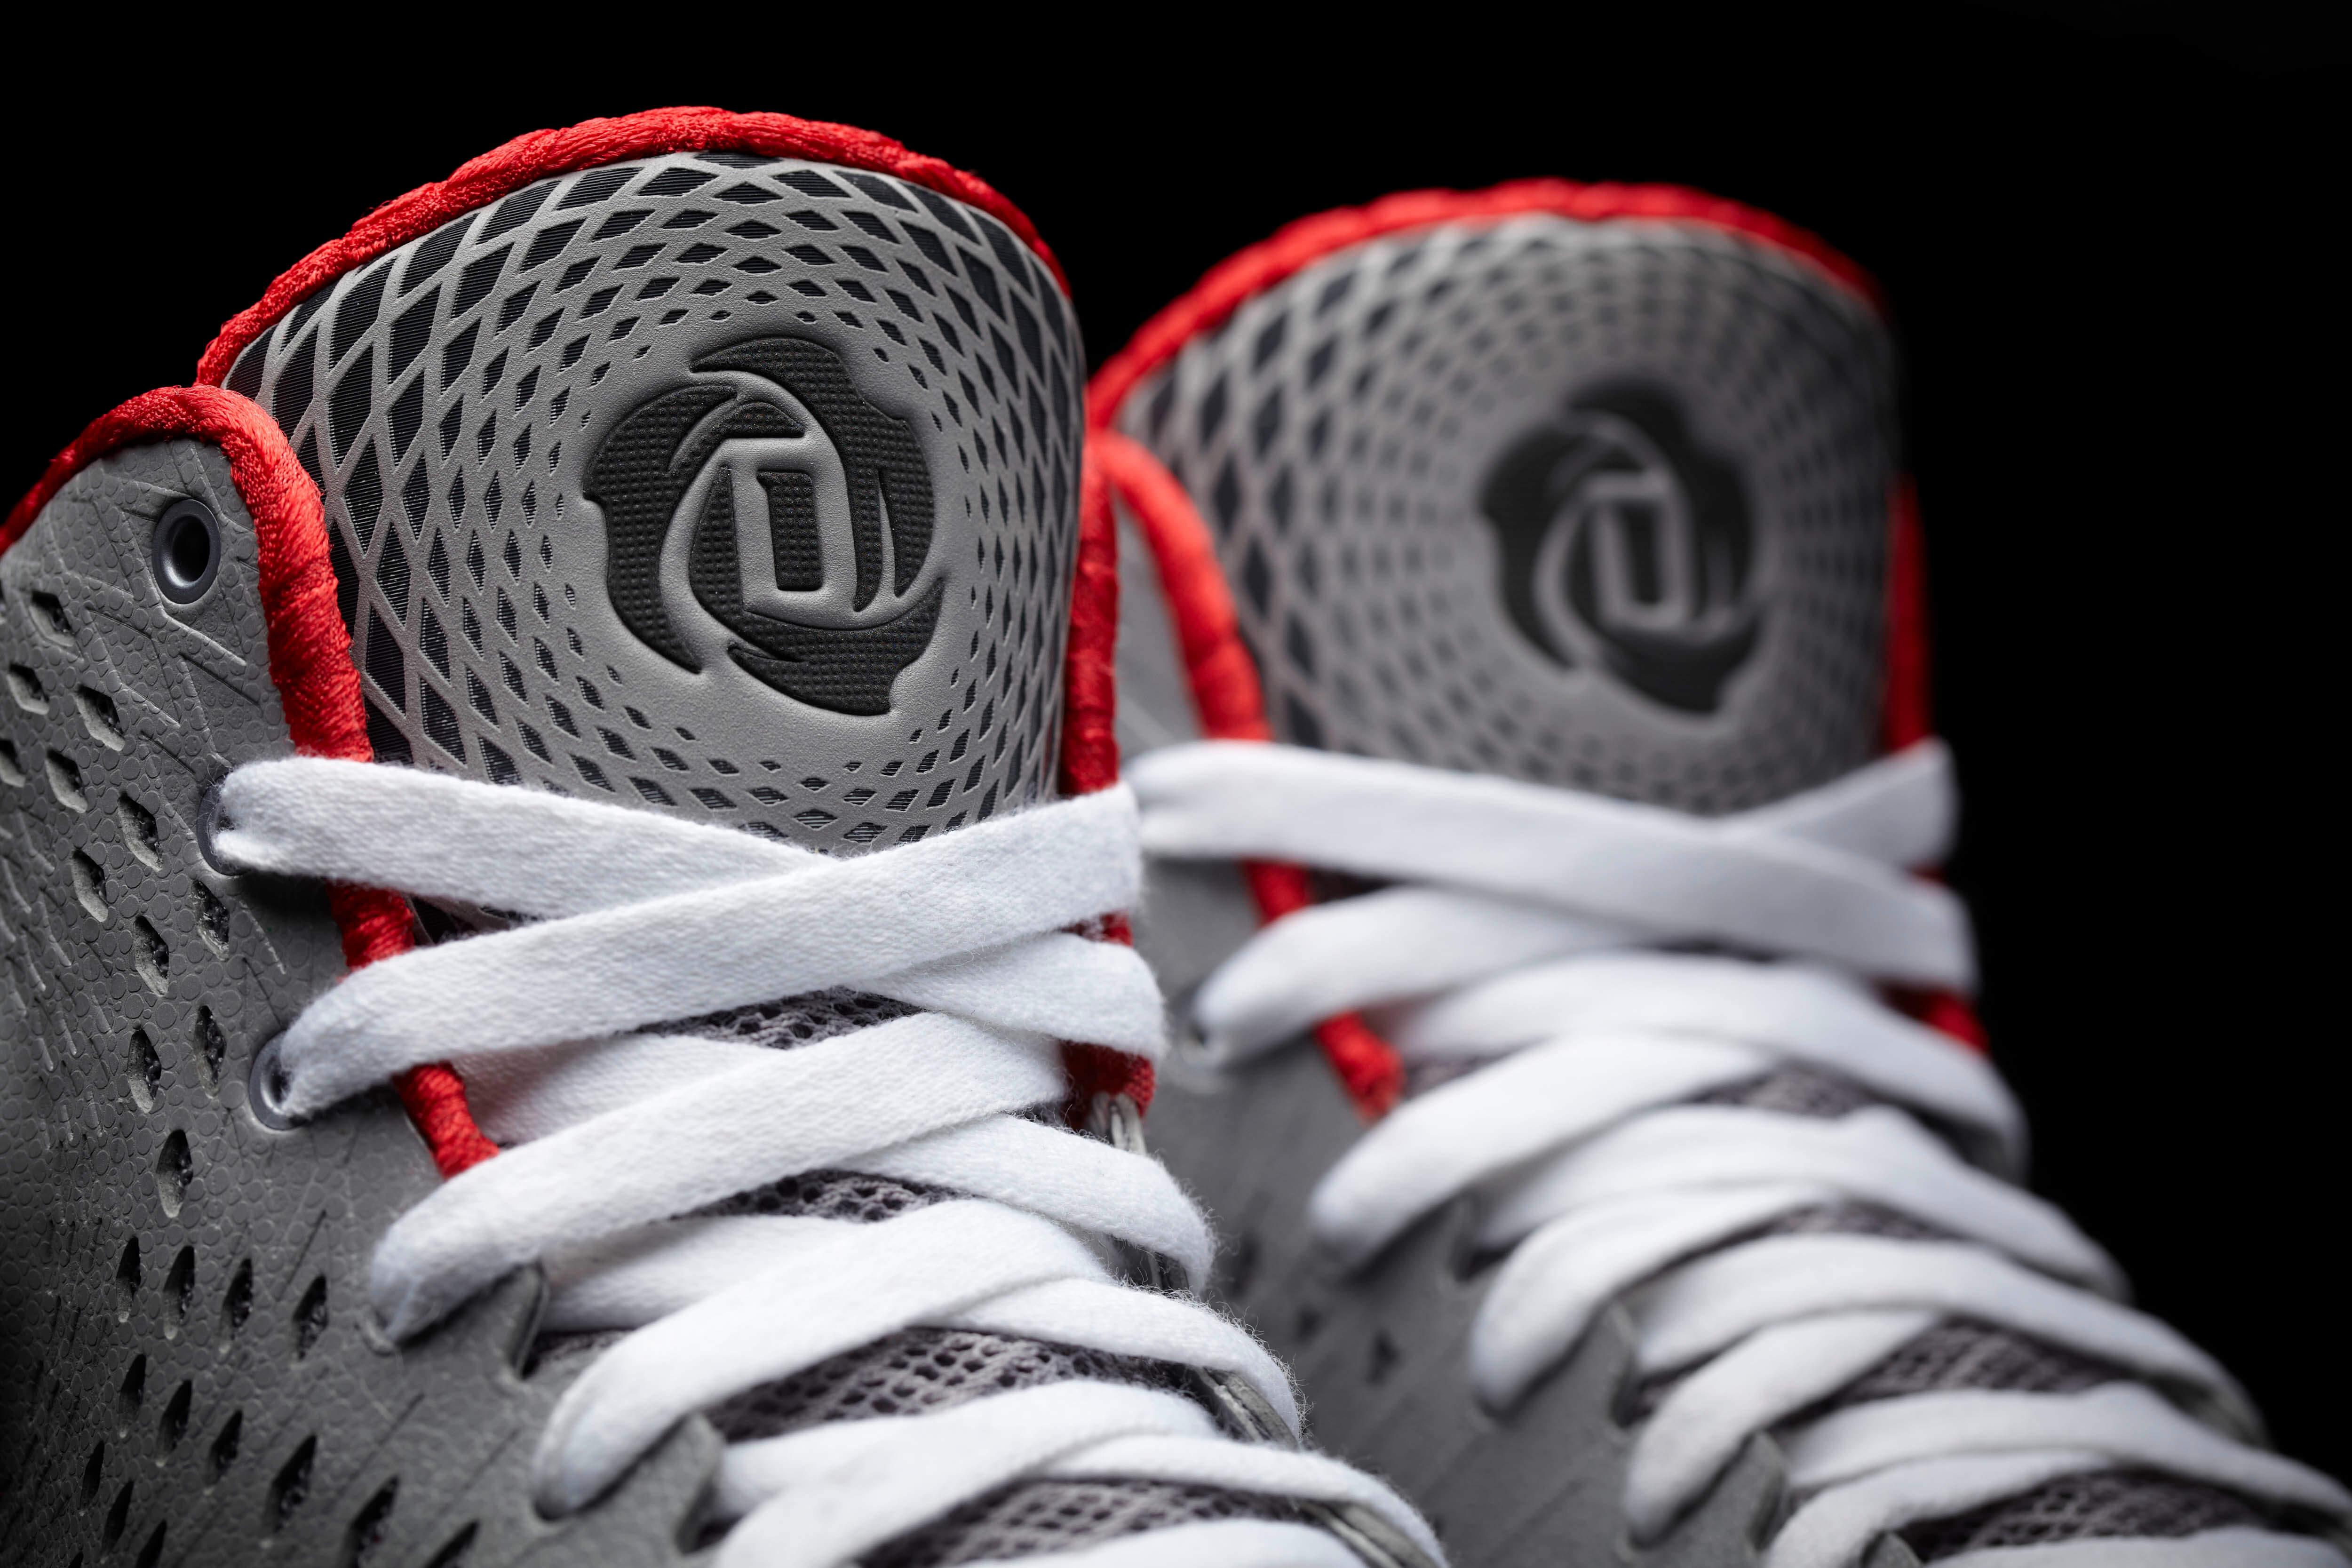 Buy Derrick Rose Shoes 2 Off76 Discounted